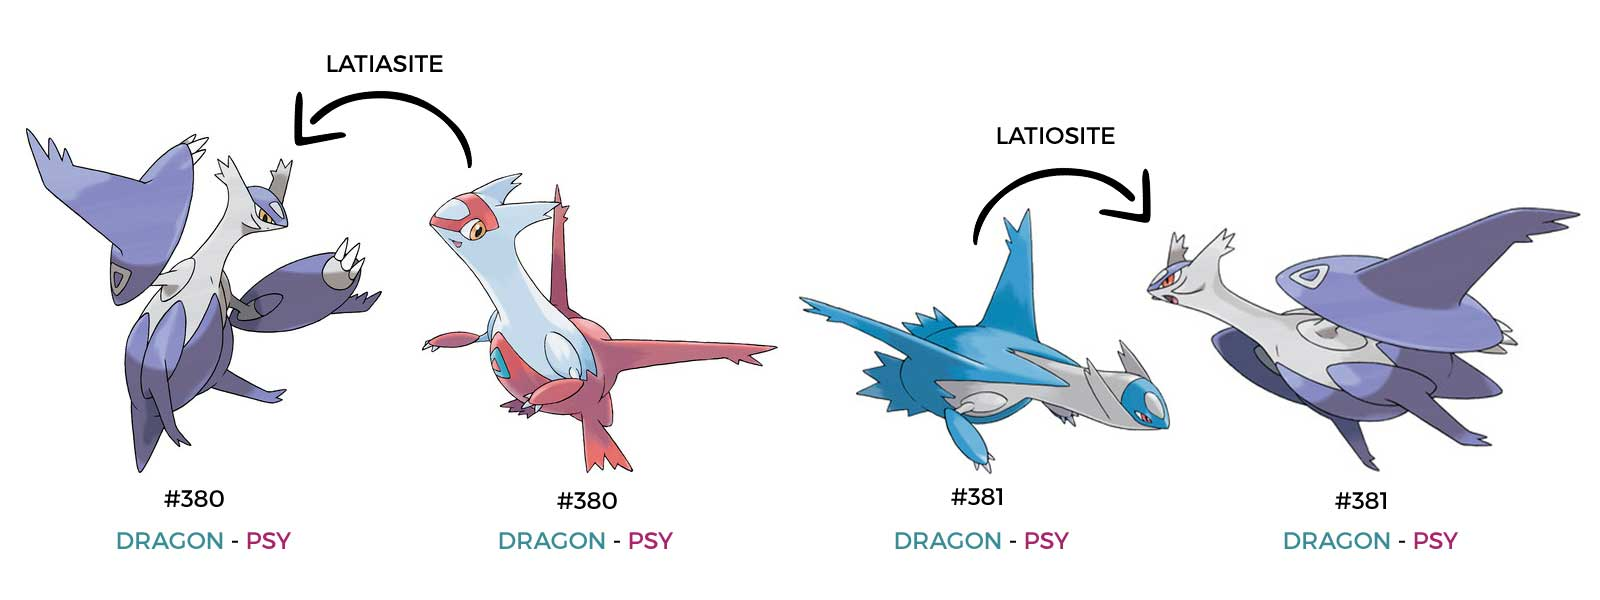 Latias et Latios type dragon